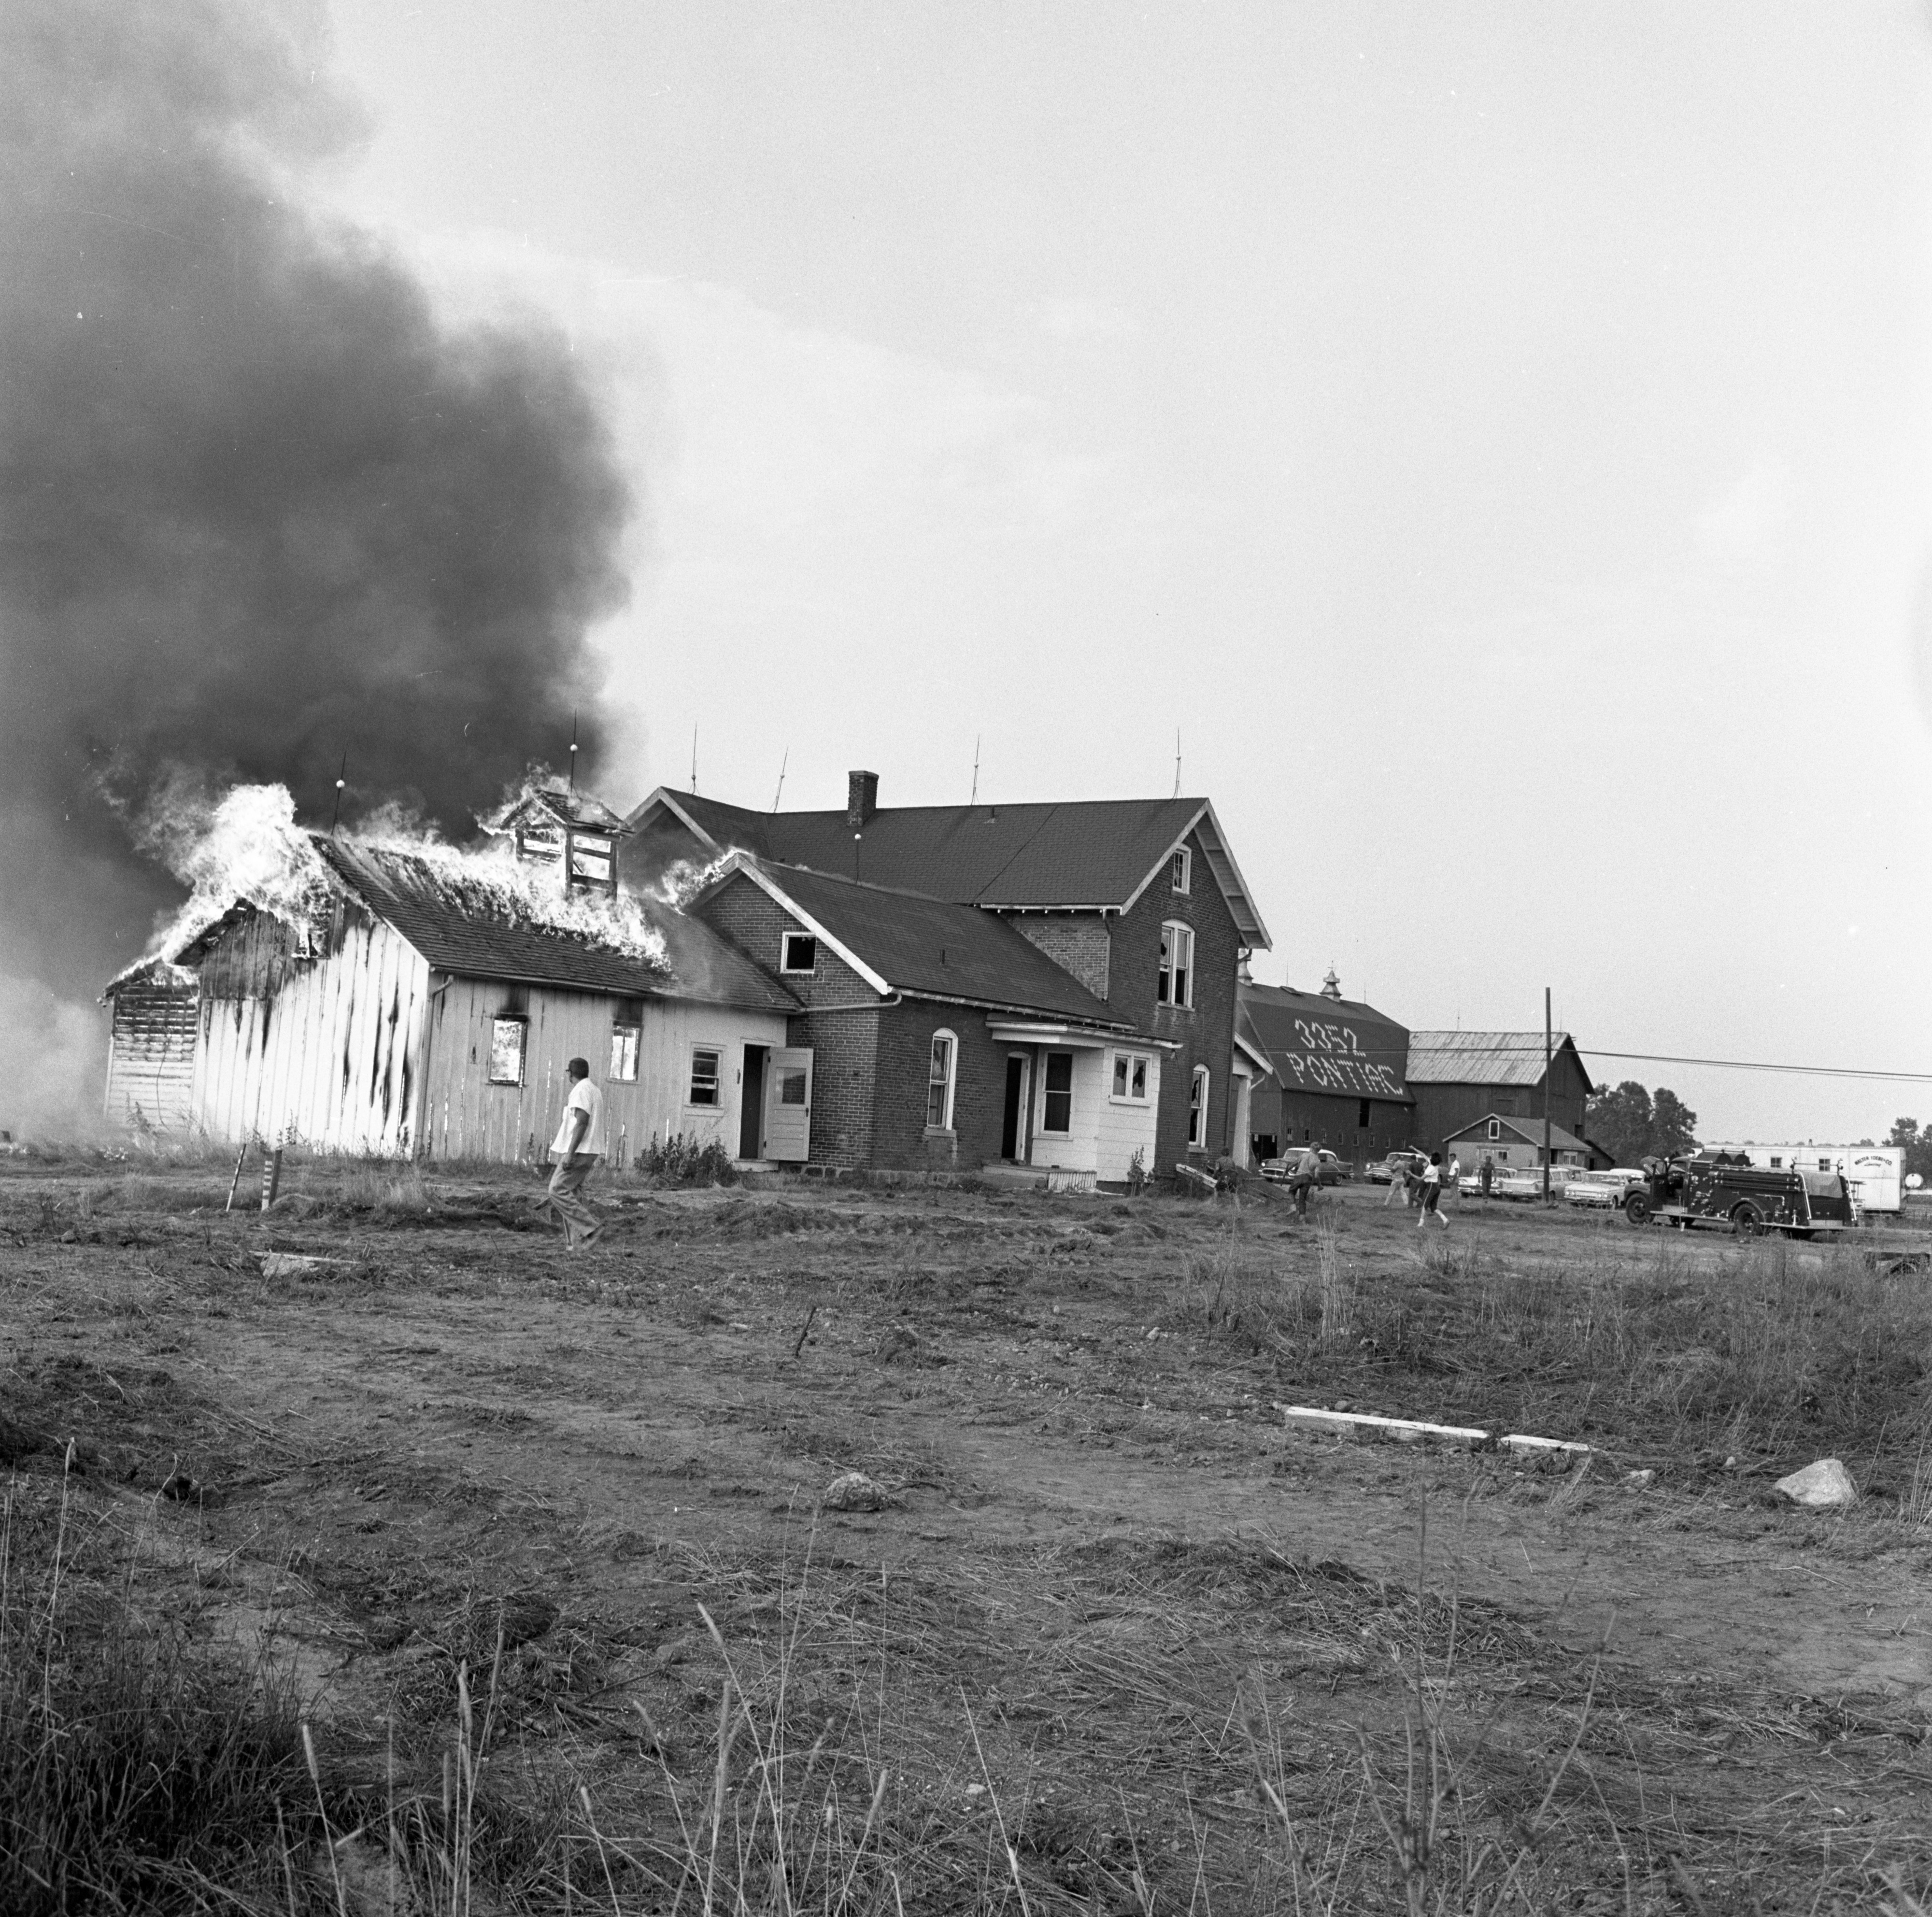 The Kappler Home At 3351 Pontiac Road Is Burned To Make Room For US-23 Construction, July 1961 image